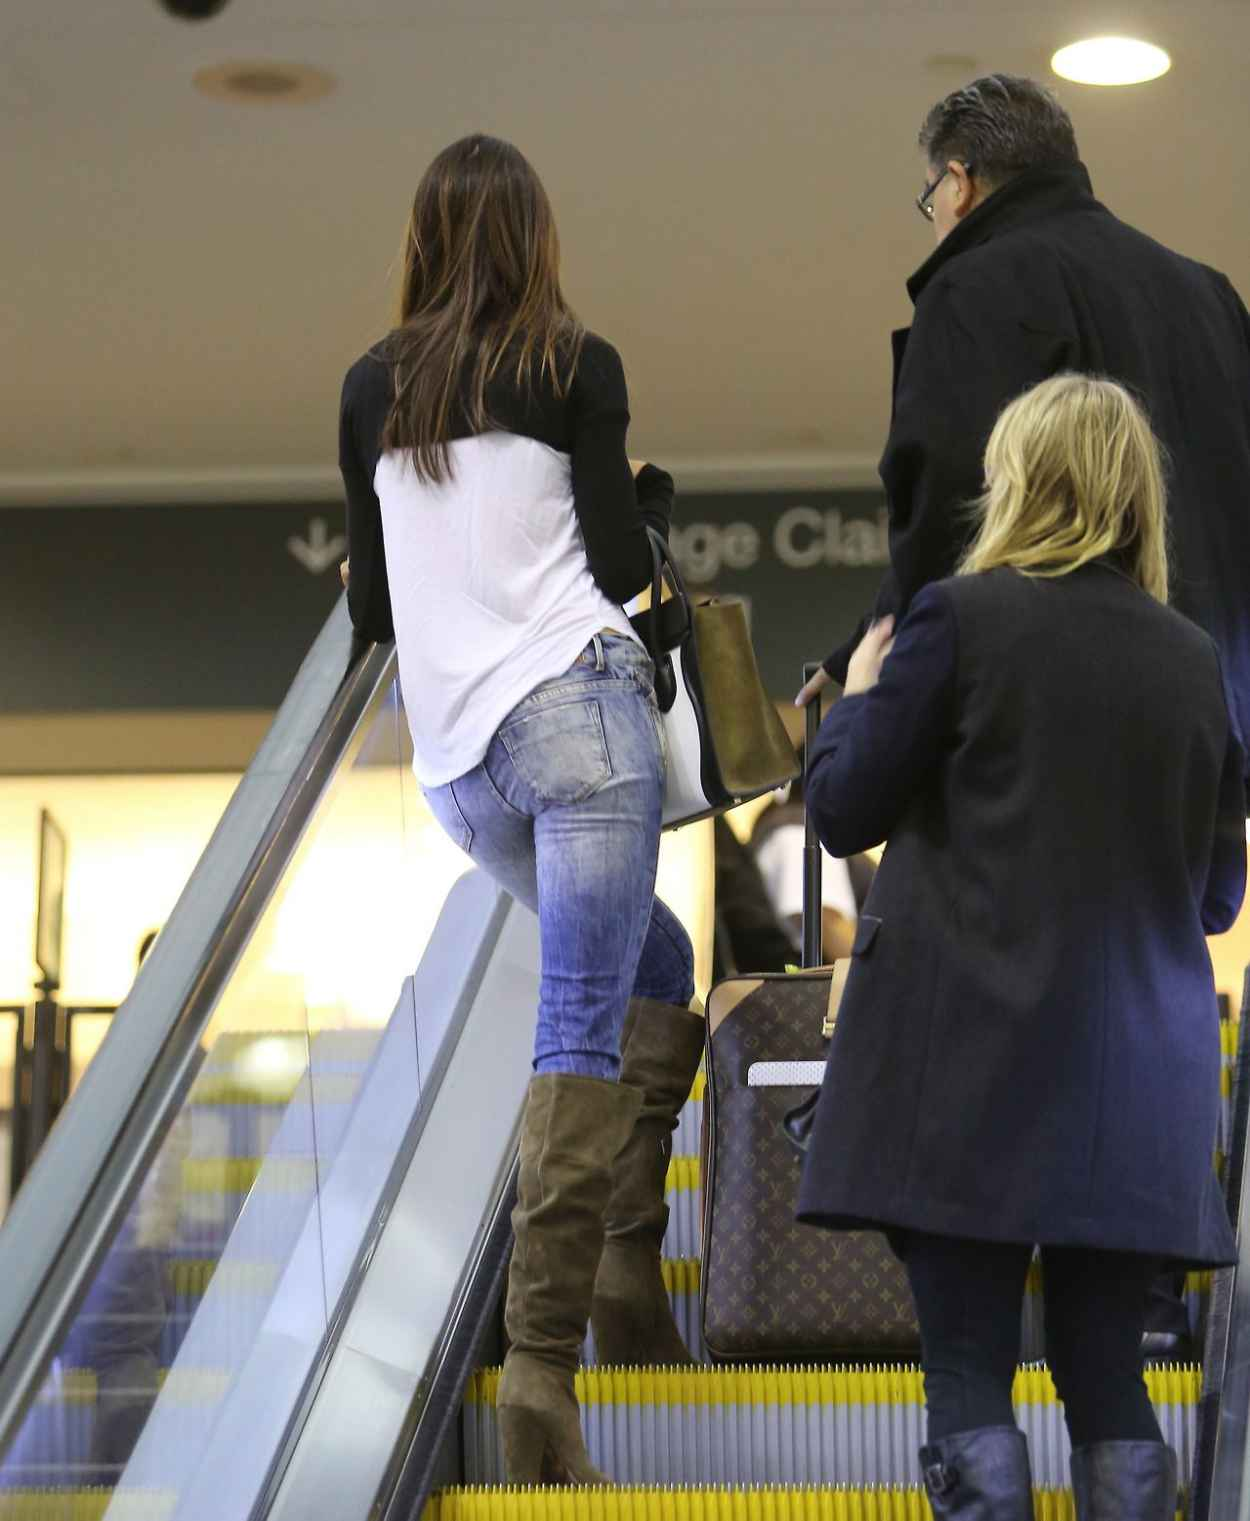 Kendall Jenner in Jeans at LAX Airport - November 2015-4